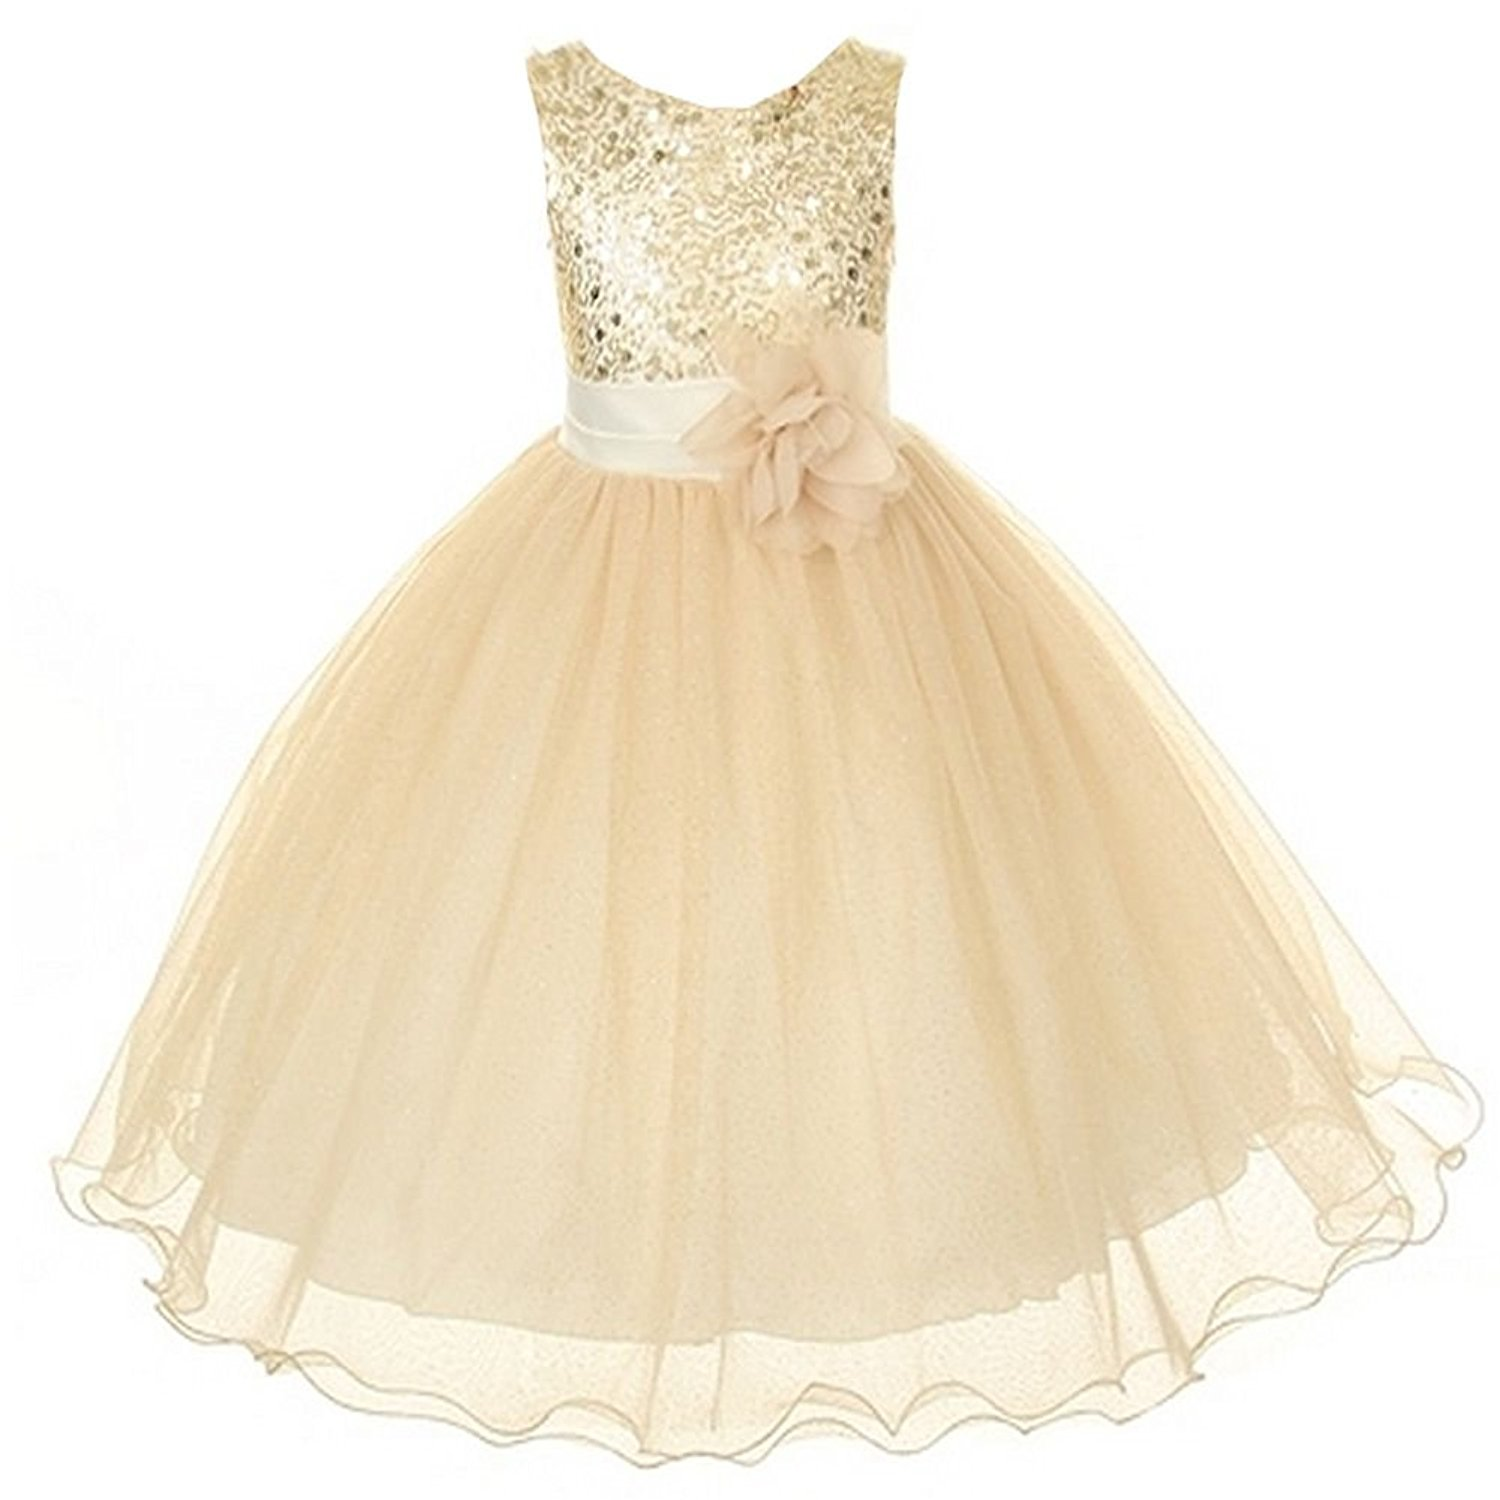 90d4d078a04 Get Quotations · Sequin Bodice Tulle Special Occasion Holiday Flower Girl  Dress